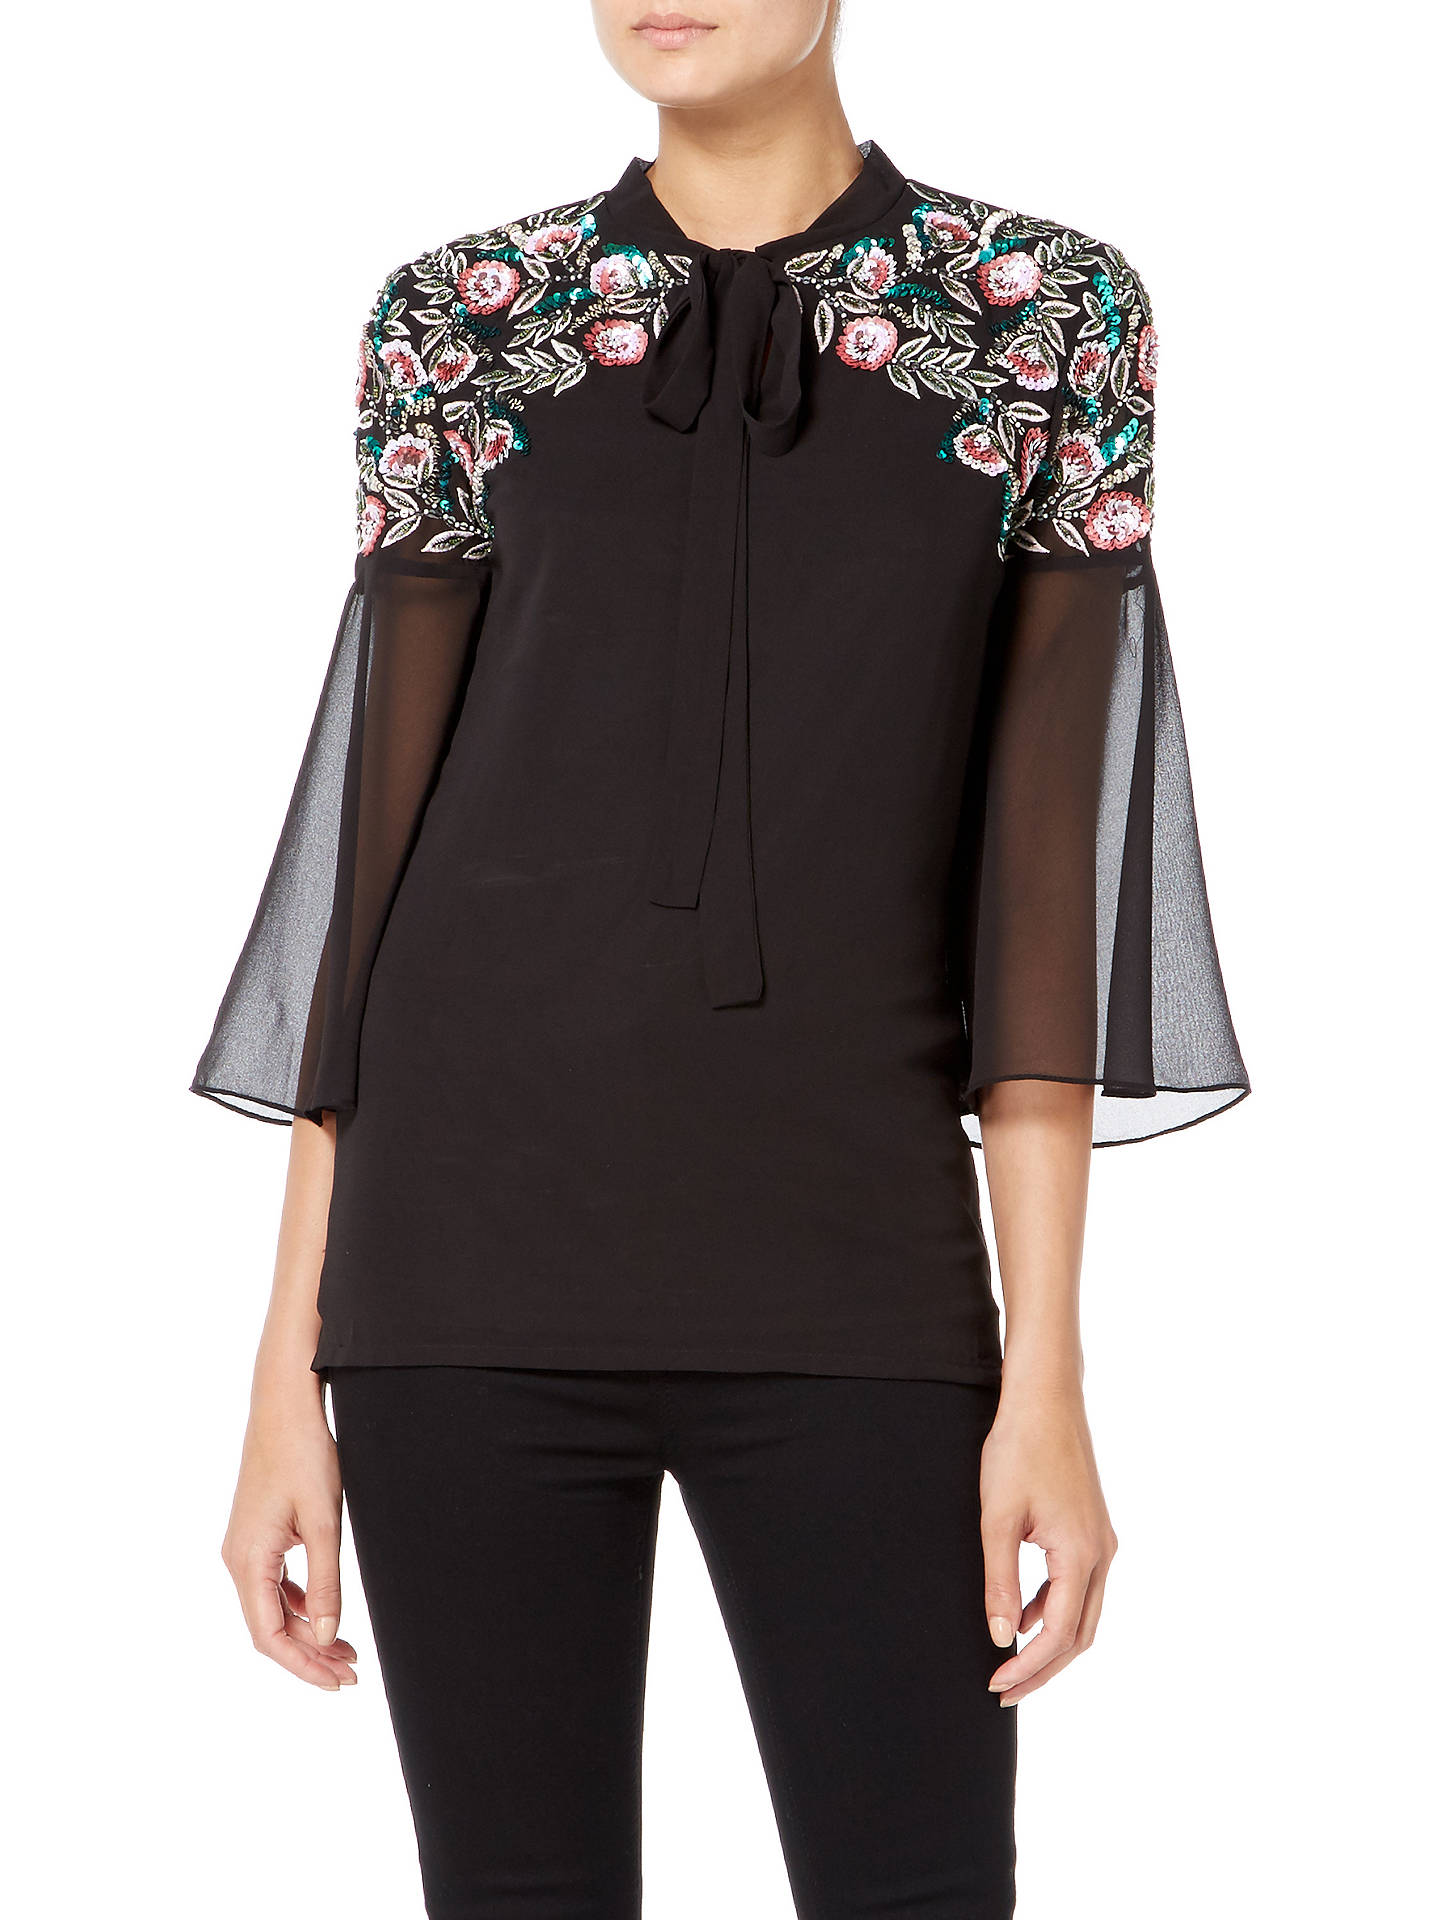 BuyRaishma Boho Sequin Shirt, Black, 8 Online at johnlewis.com